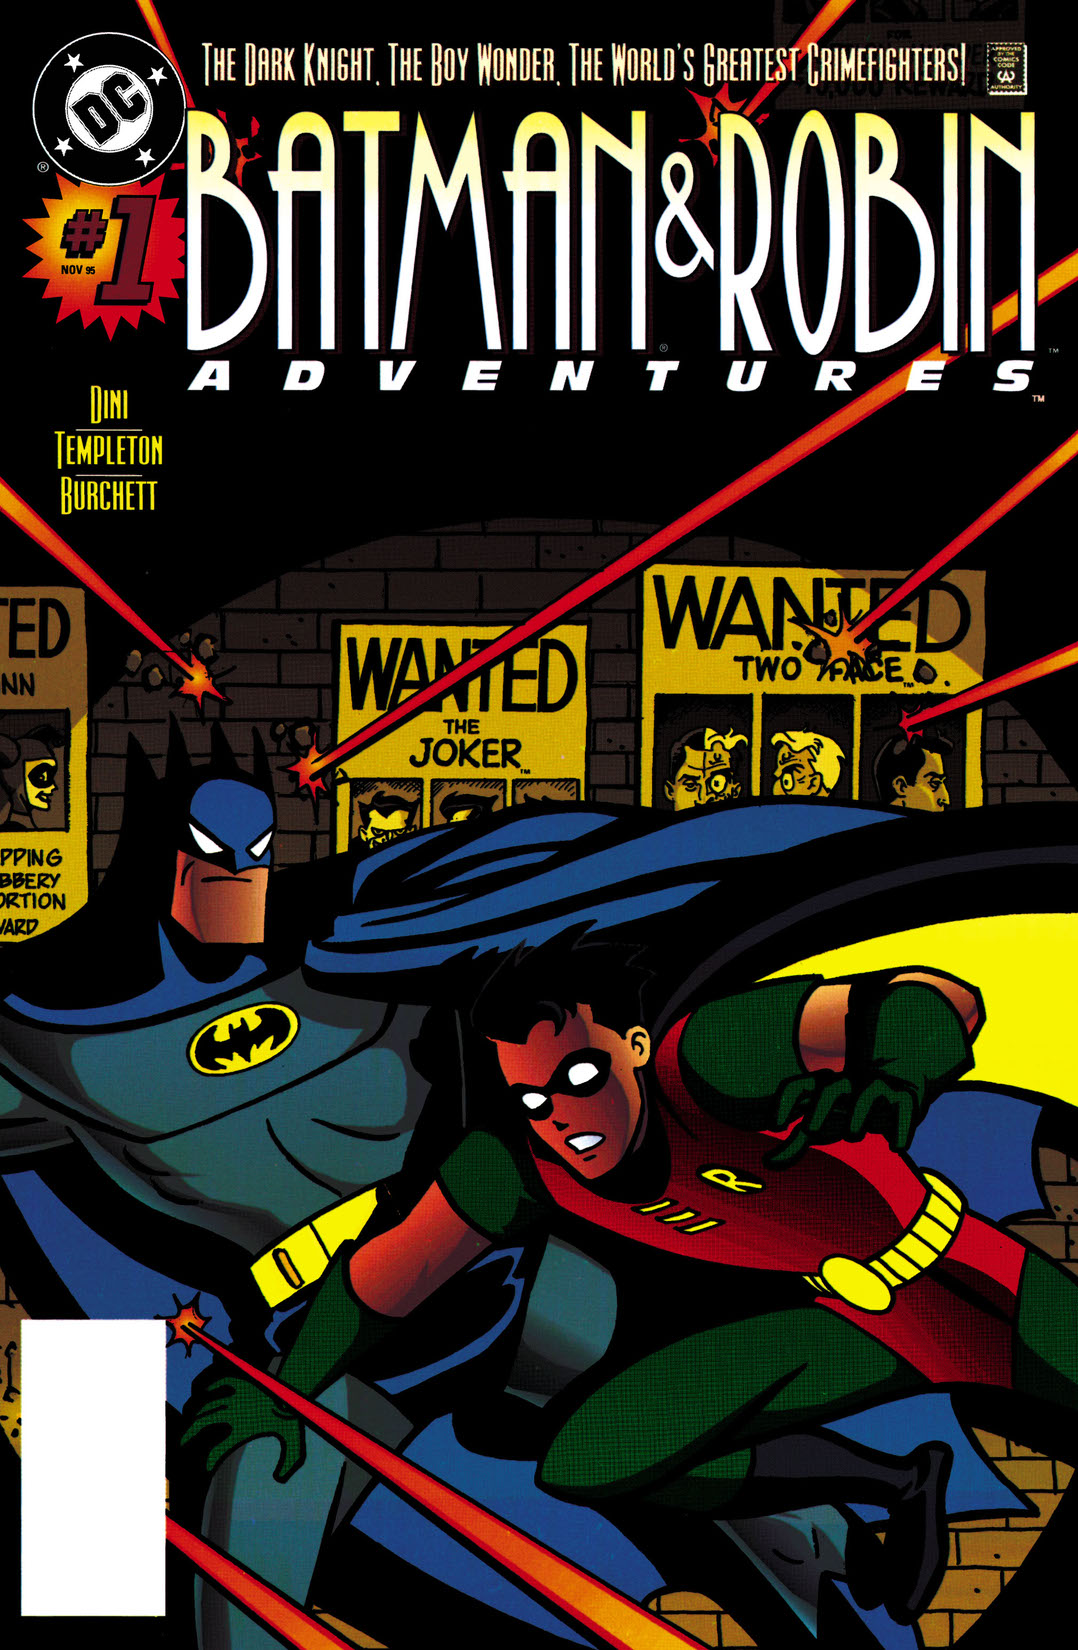 read the batman and robin adventures 1995 1 on dc universe